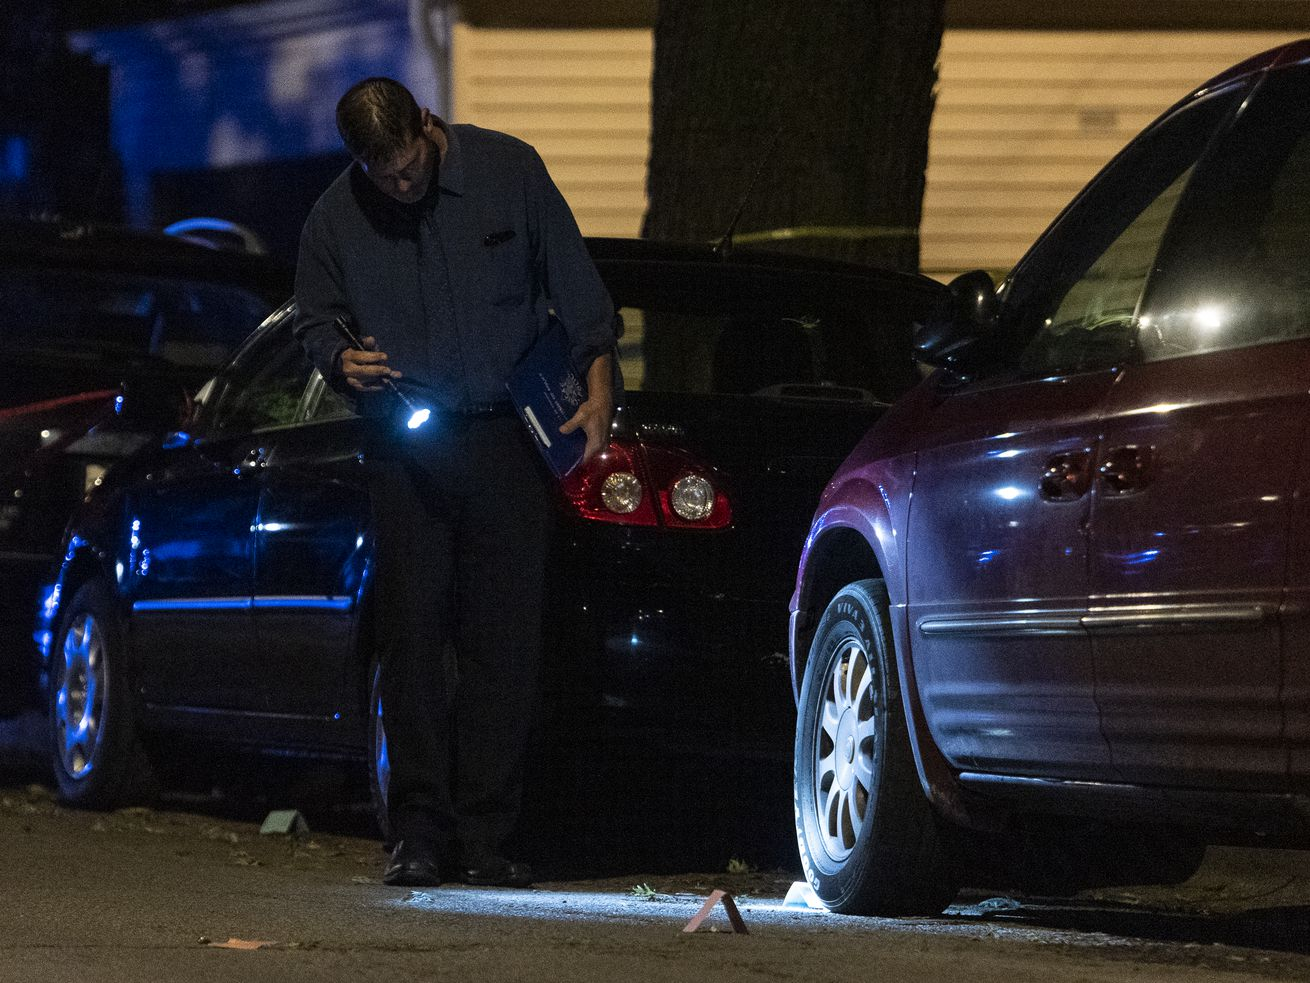 Chicago police investigate the scene where a person was shot and killed in the 3600 block of West Argyle St. in the Albany Park neighborhood, Monday, Sept. 14, 2020. | Tyler LaRiviere/Sun-Times